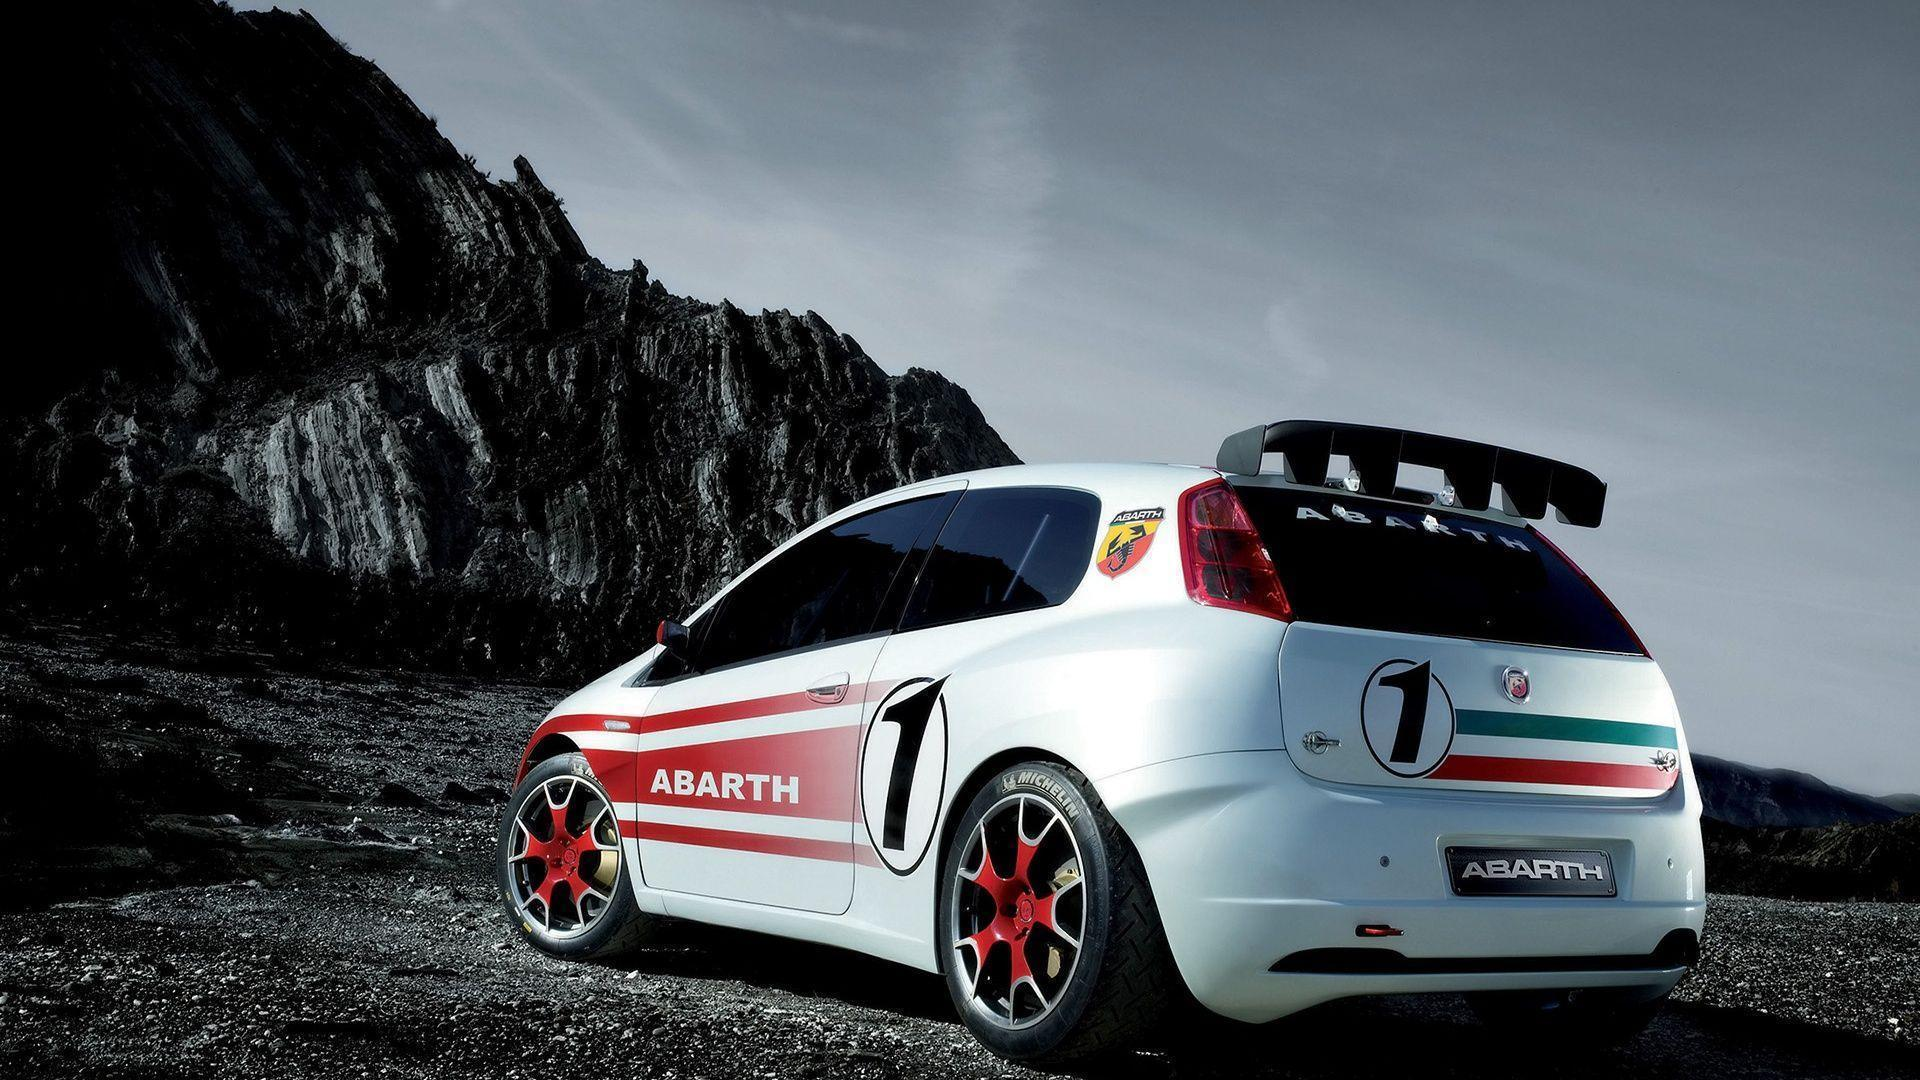 Wallpaper backgrounds for your desktop. All Fiat cars wallpapers ...